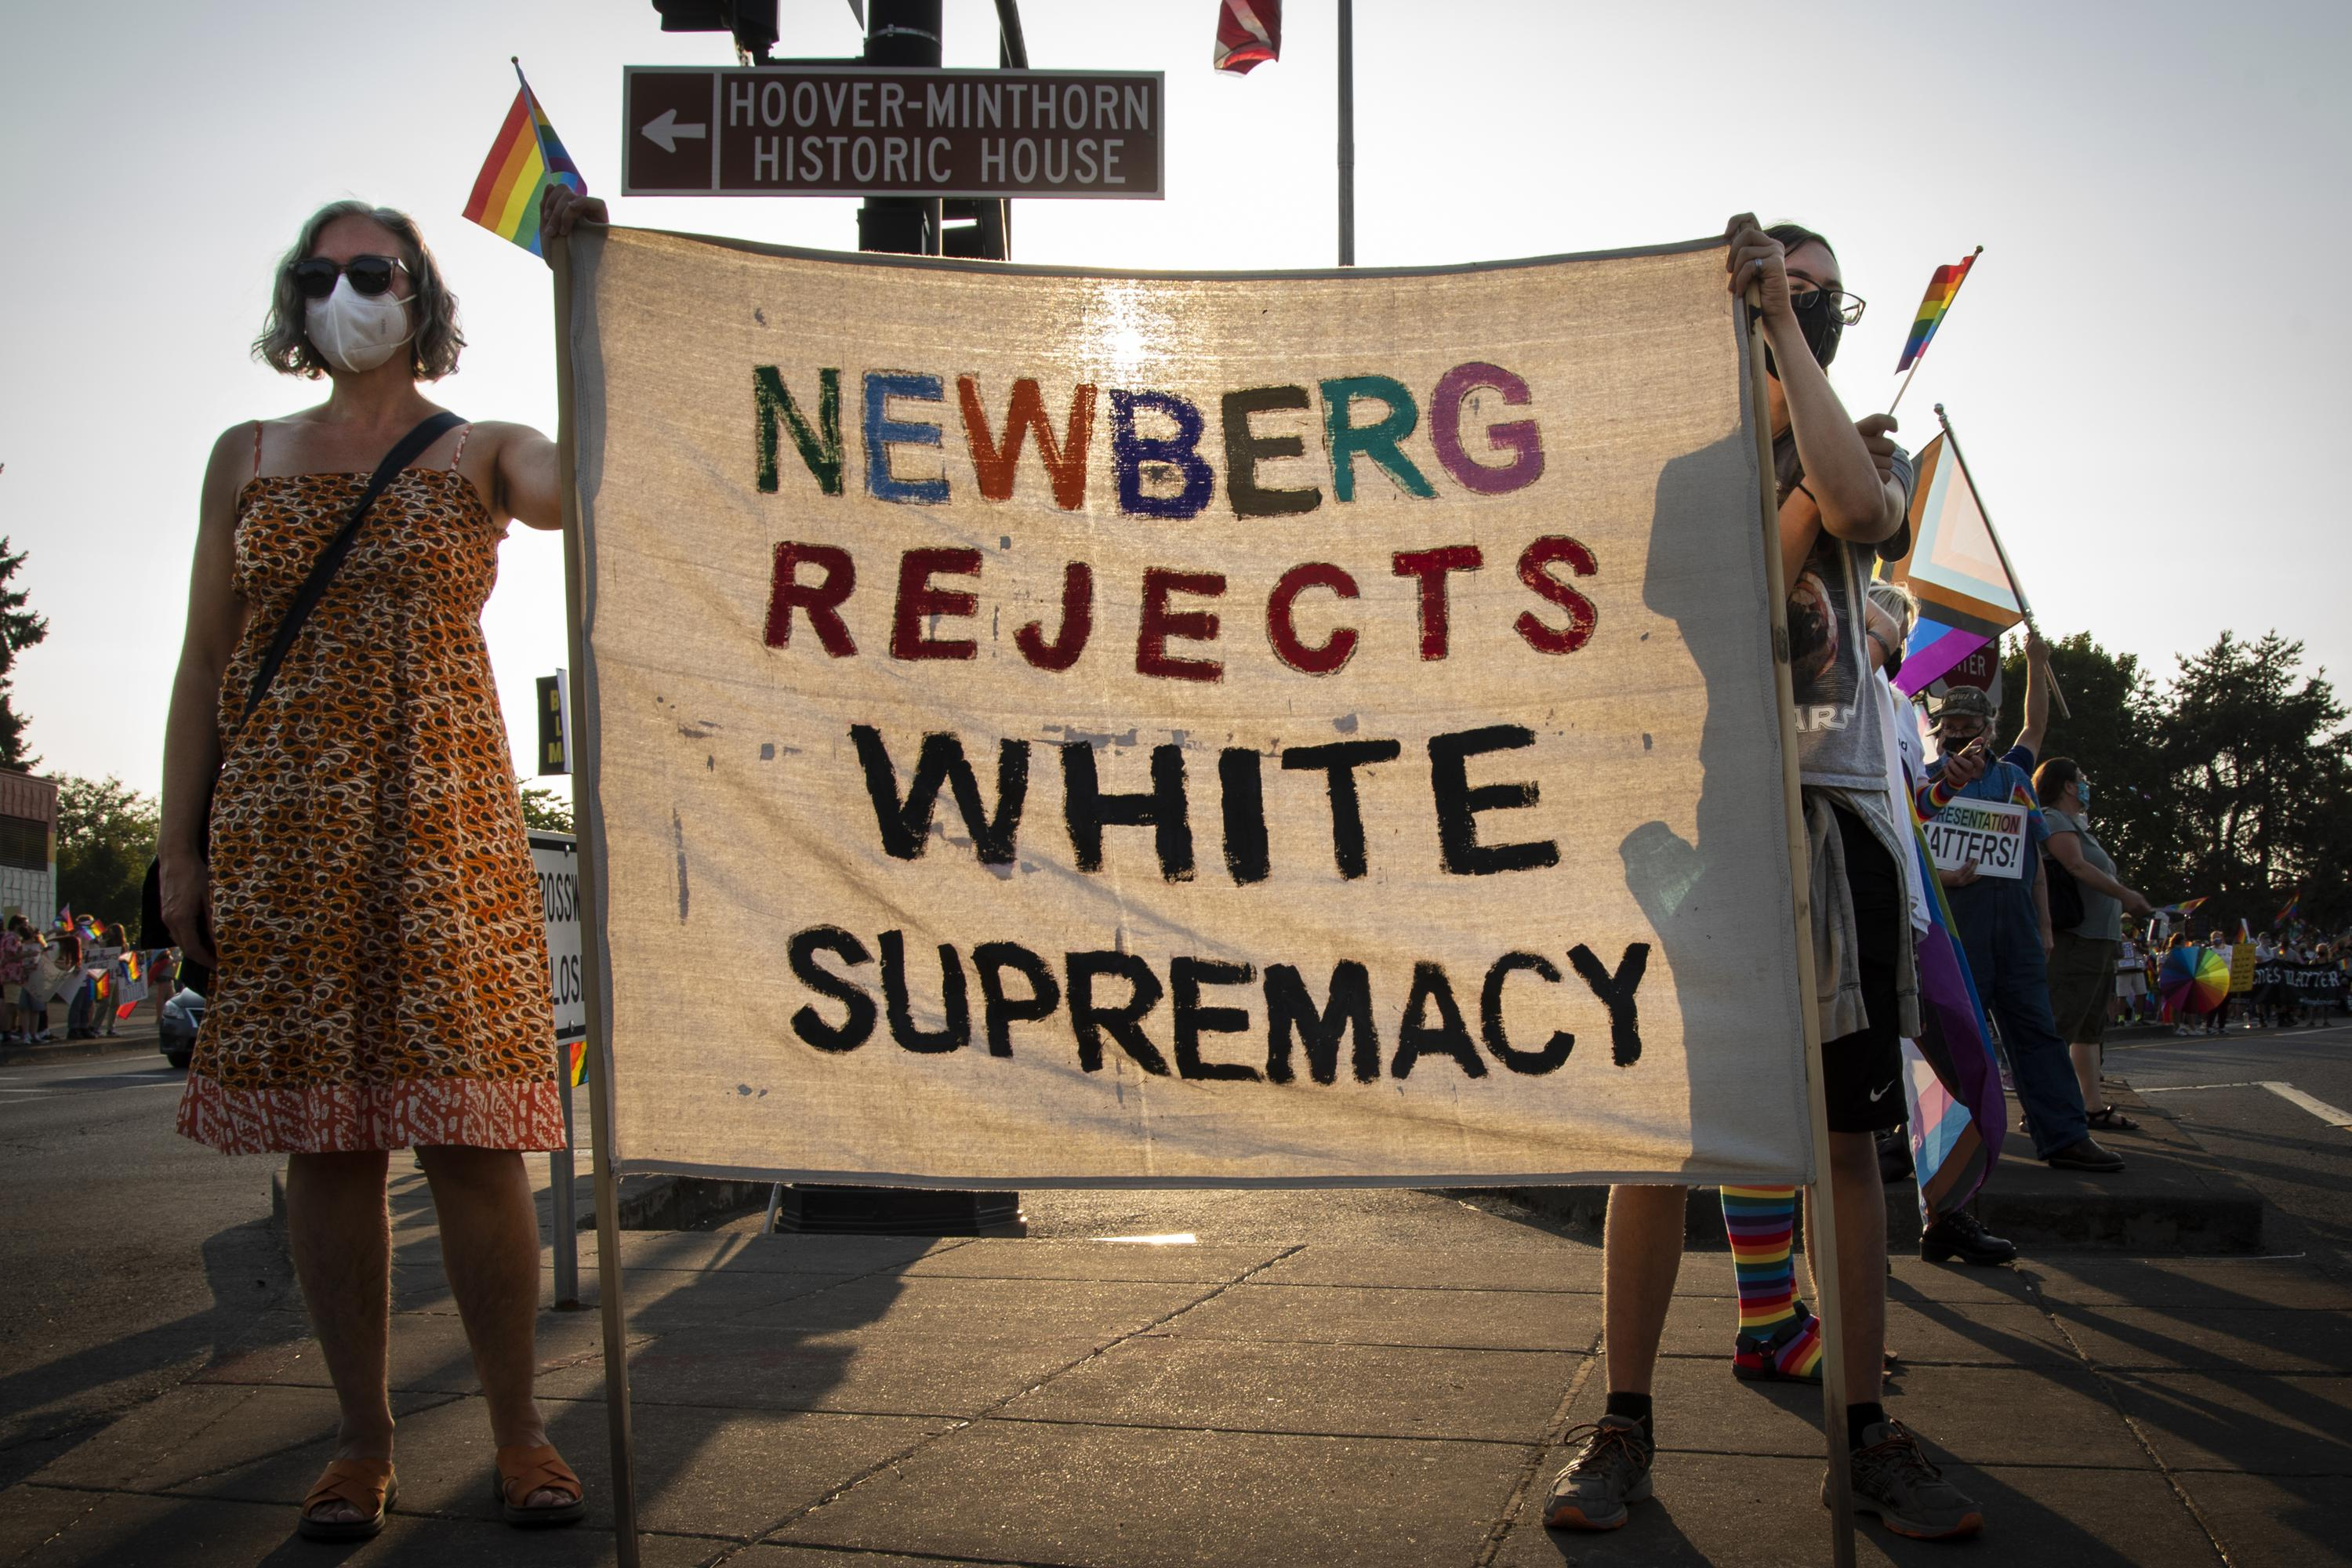 NEWBERG, Ore. (AP) — An Oregon school board has banned educators from displaying Black Lives Matter and gay pride symbols, prompting a torrent of recriminations and threats to boycott the town and its businesses.